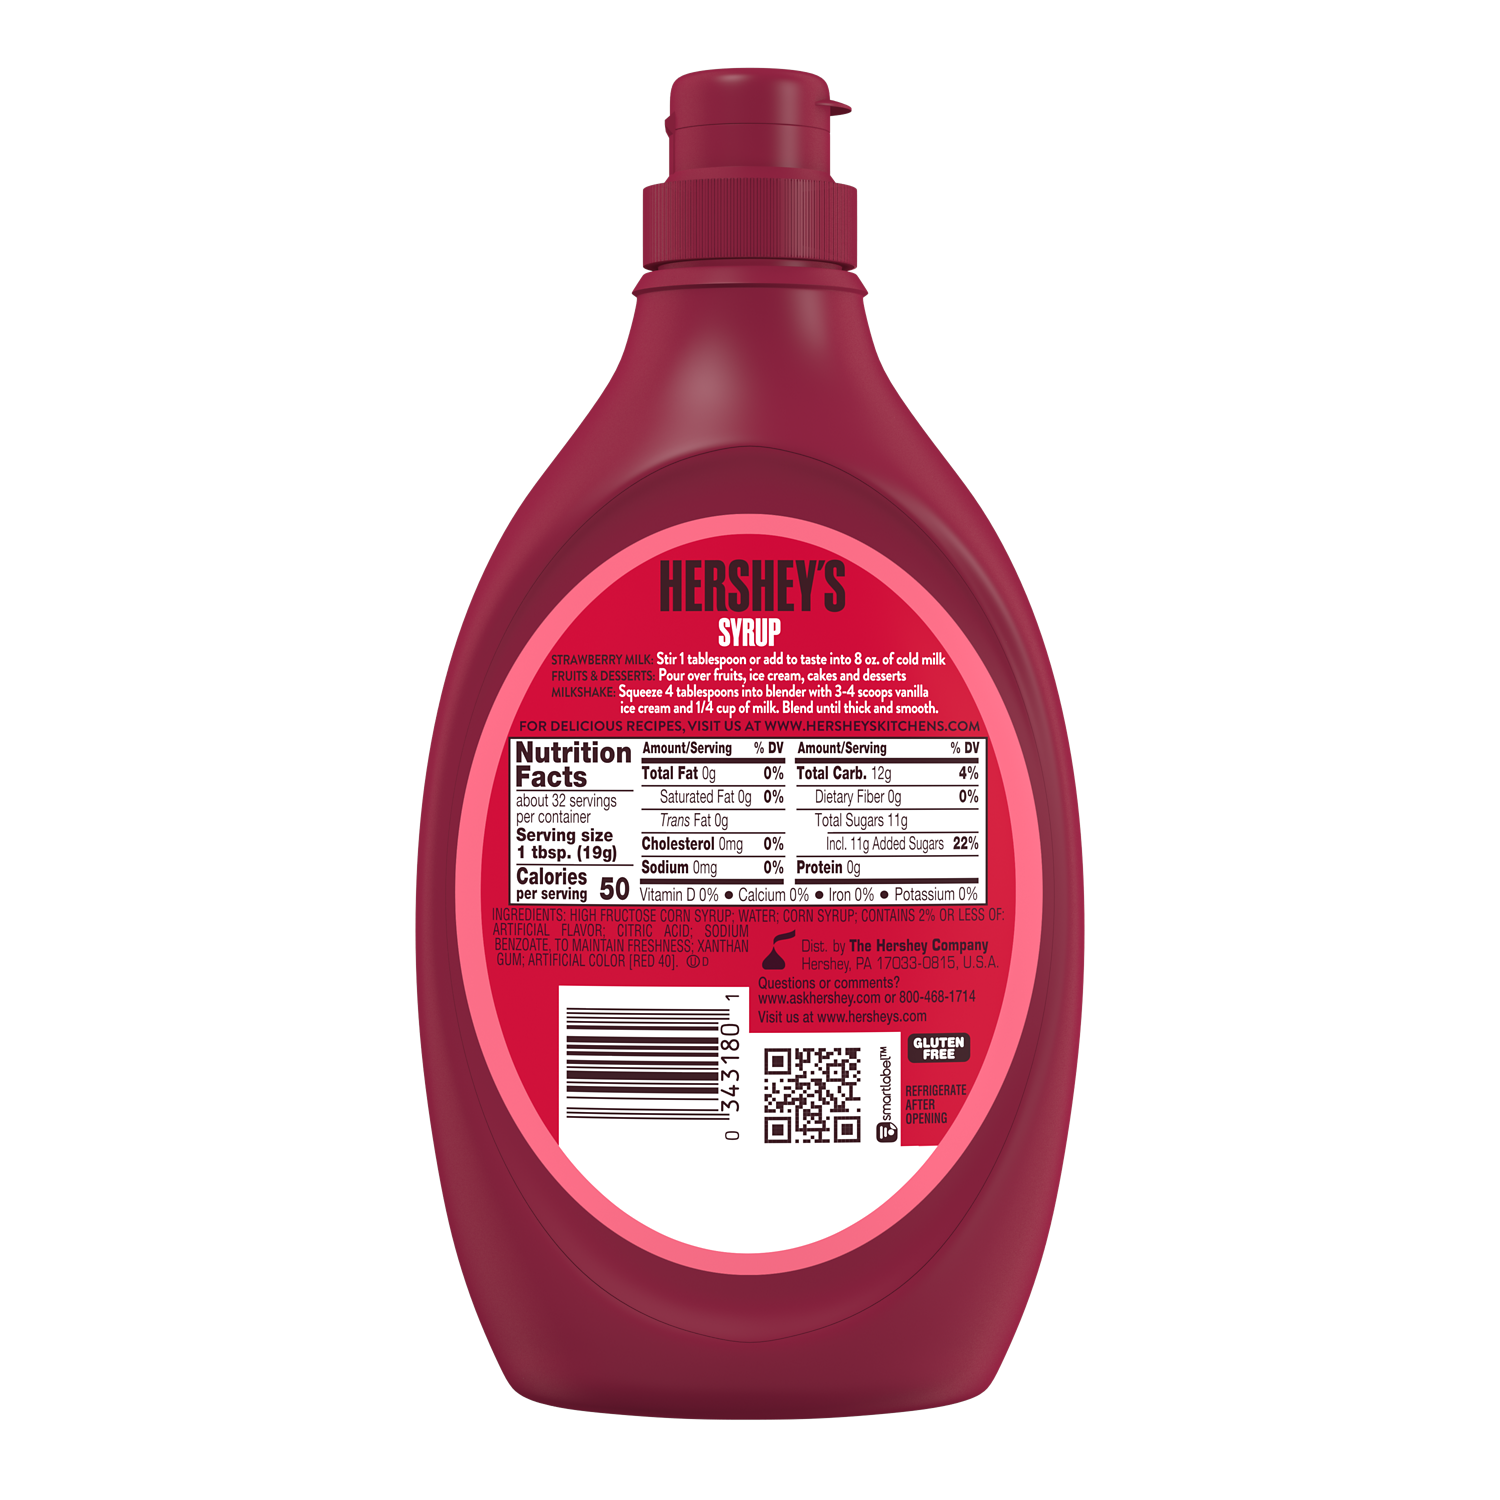 HERSHEY'S Strawberry Flavored Syrup, 22 oz bottle - Back of Package